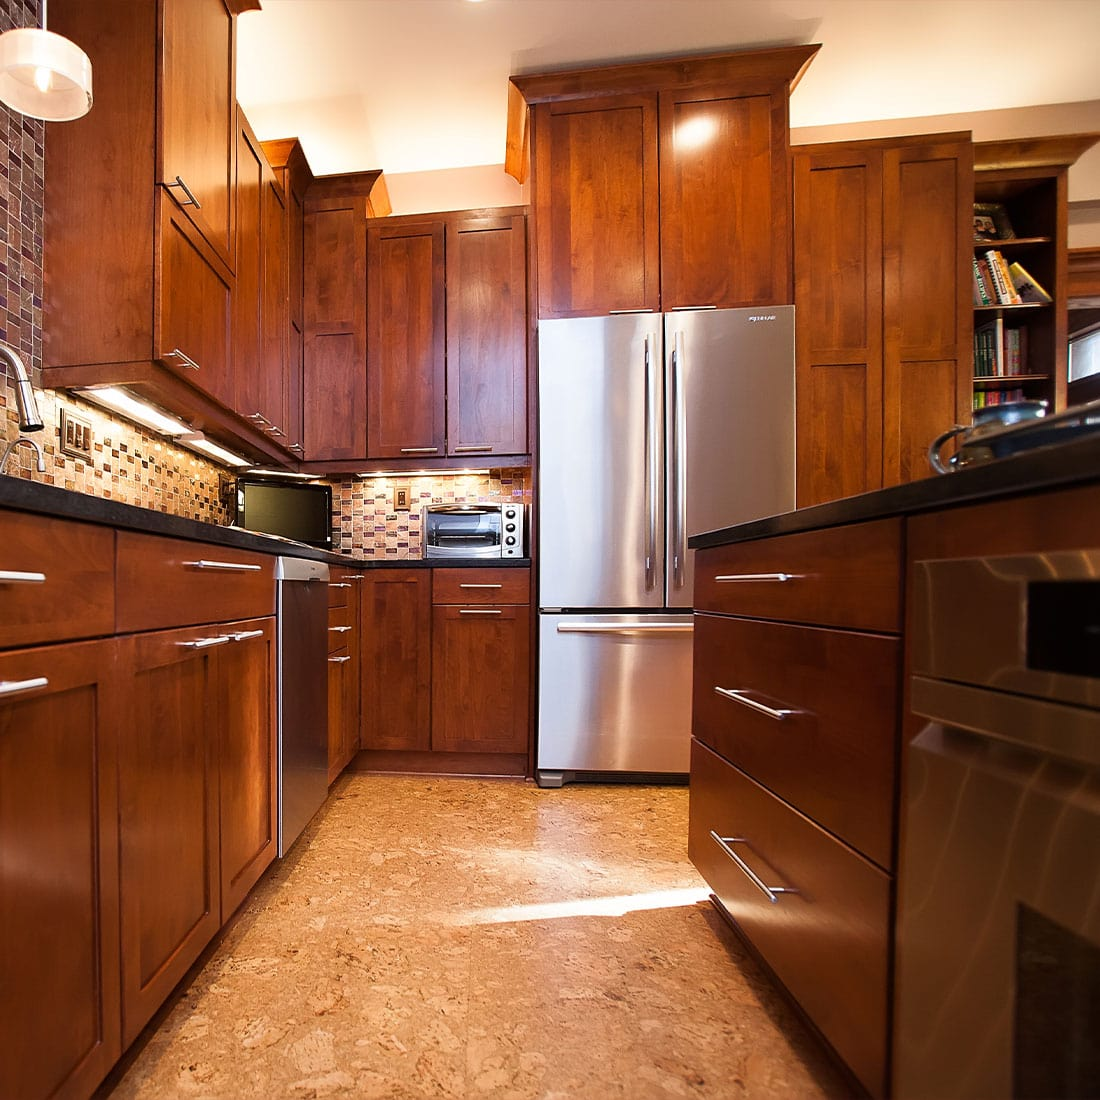 Warm wood cabinets with bamboo floors and stainless steel appliances and hardware in renovated kitchen